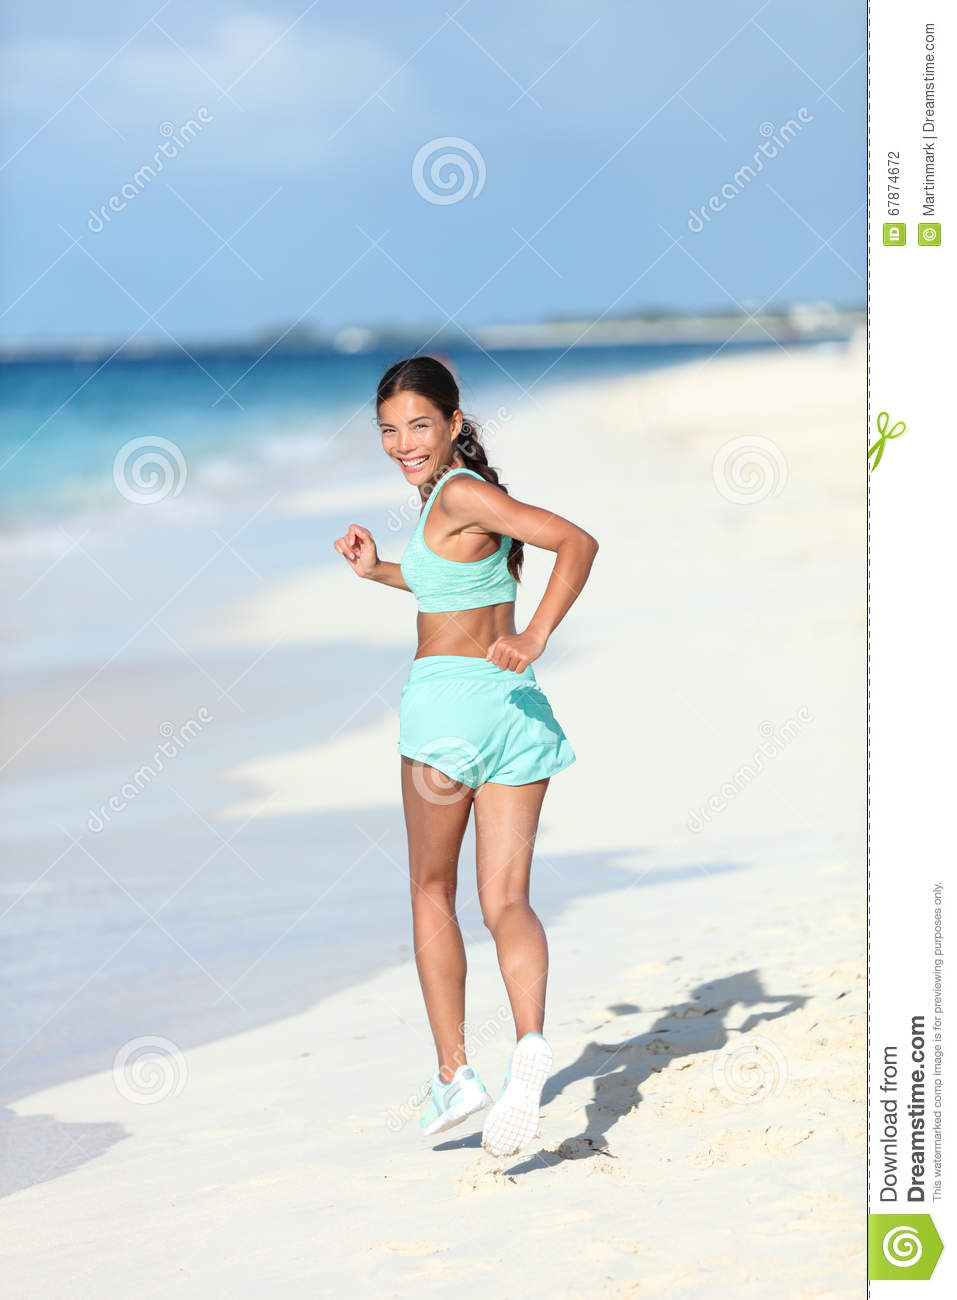 Happy Healthy Lifestyle Woman Runner Looking Back Running On